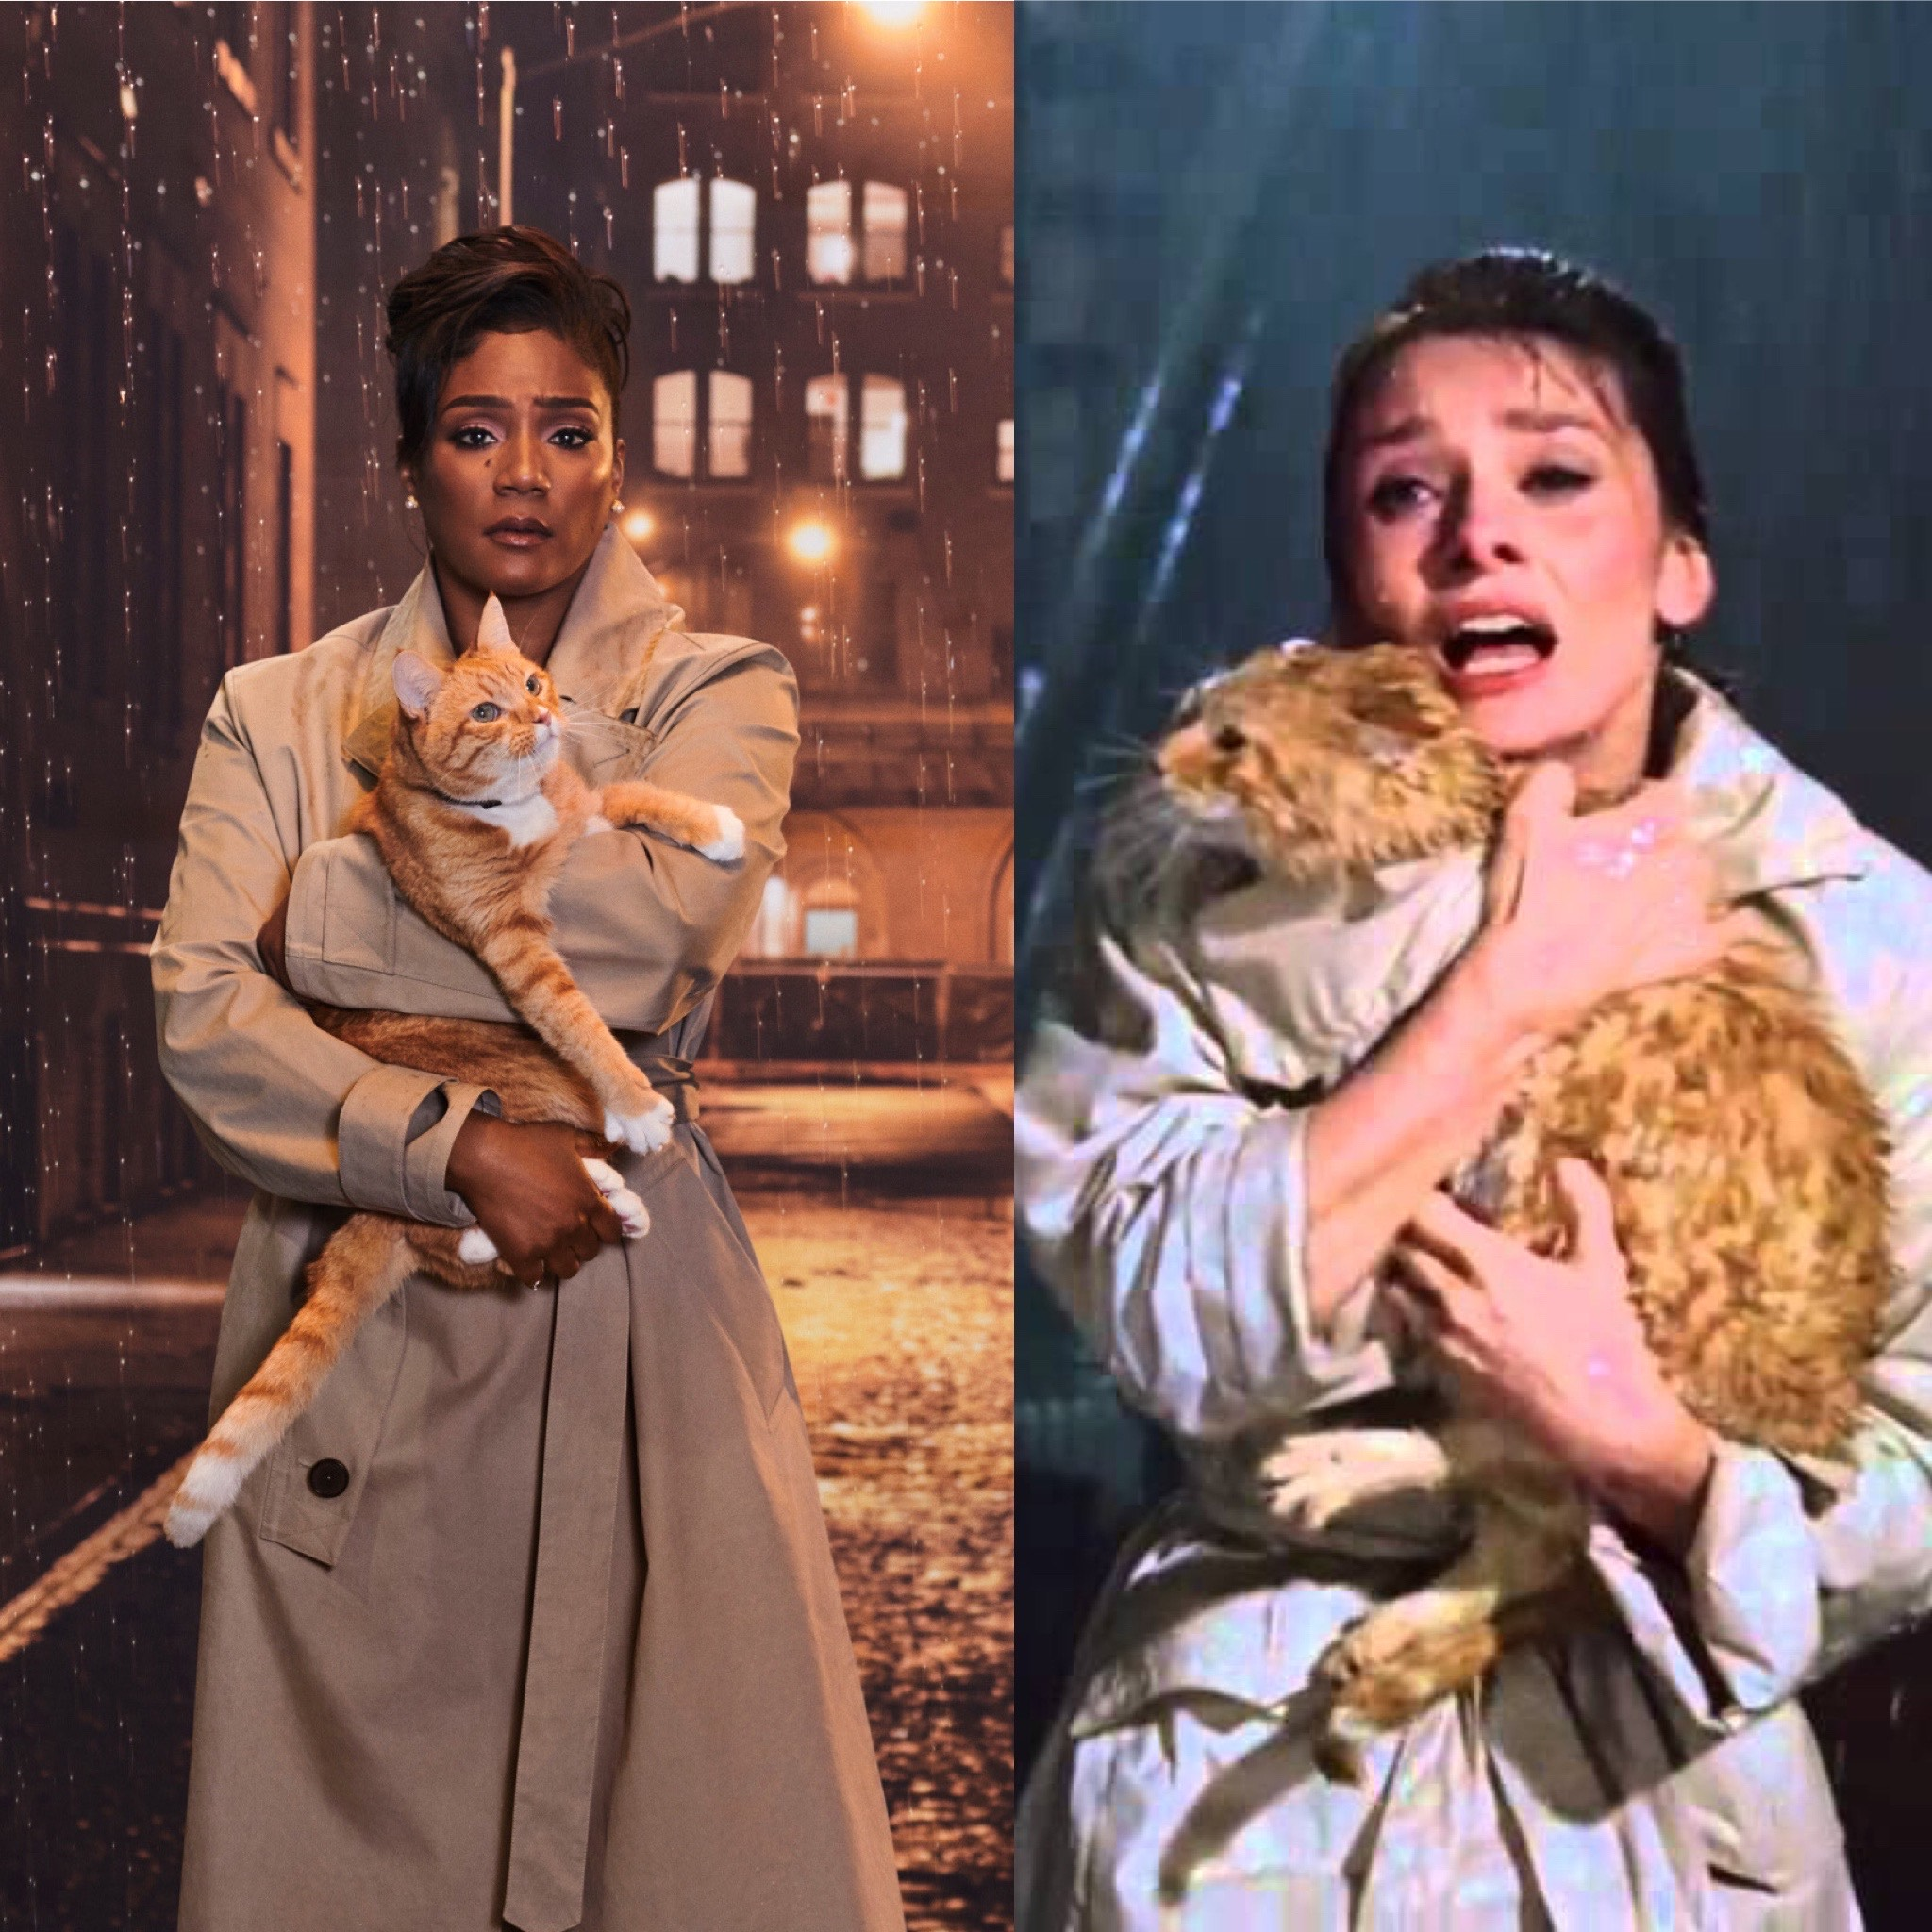 Tiffany Haddish se transforma en Holly Golightly